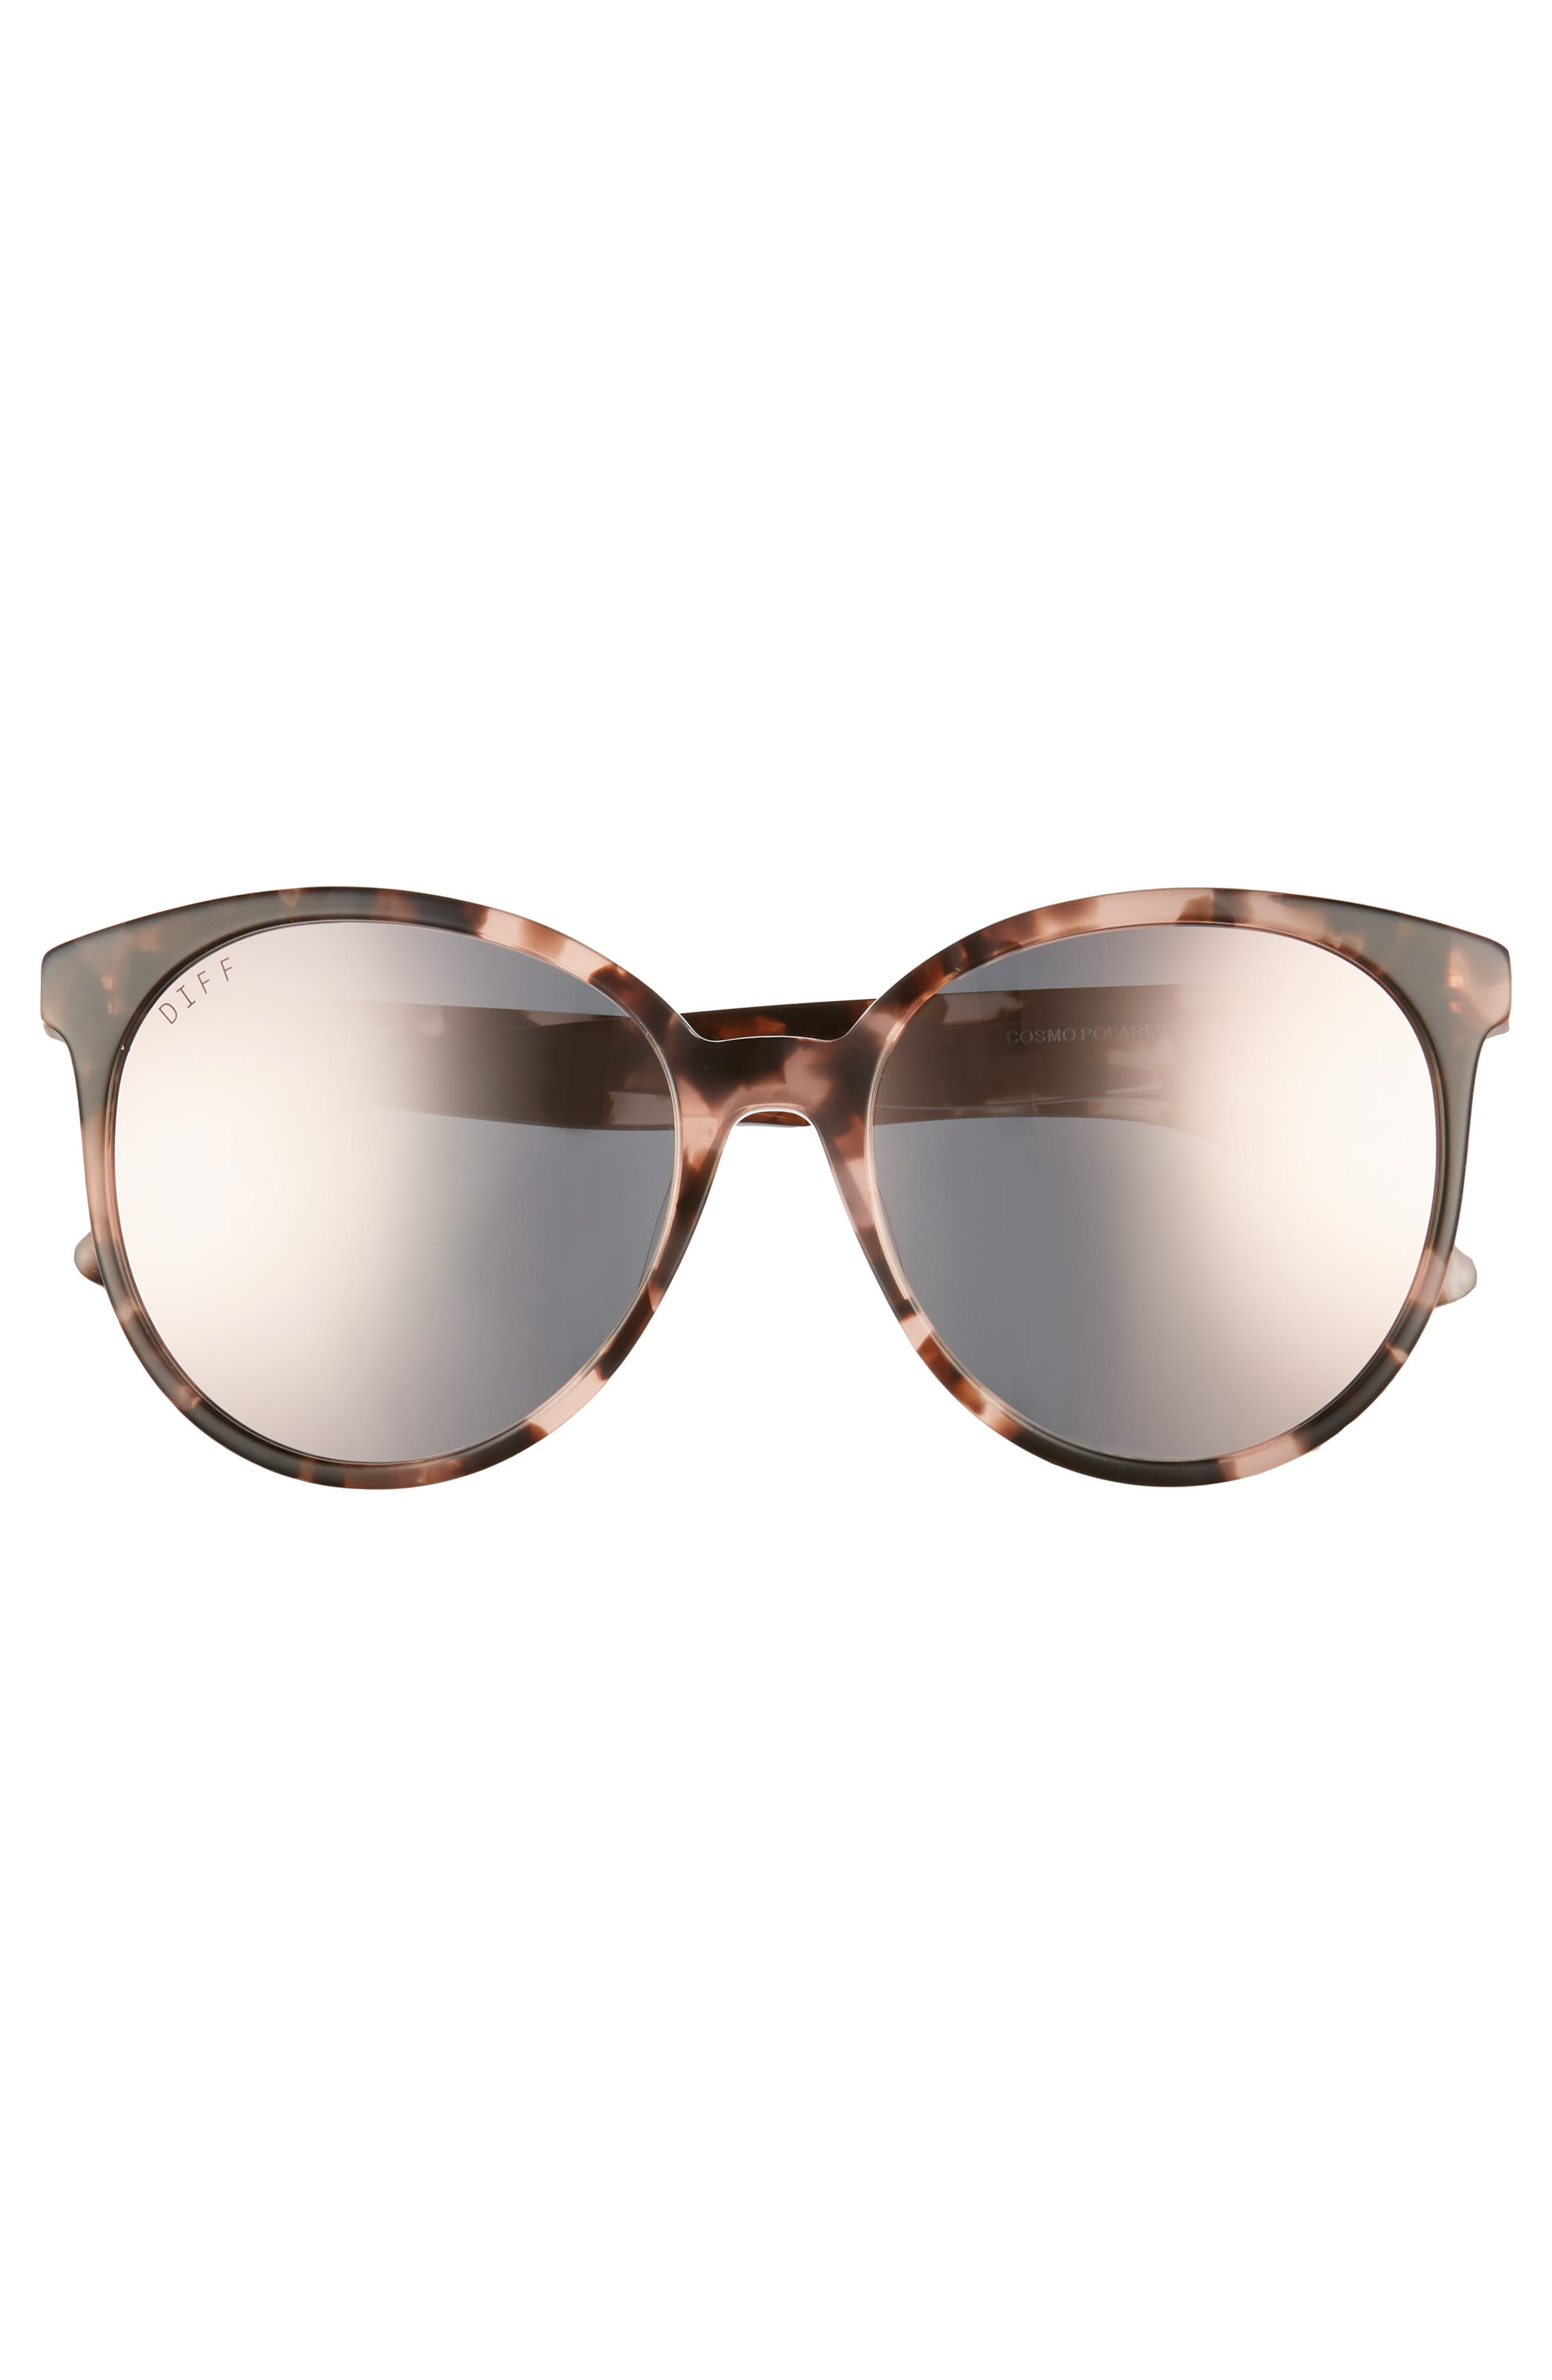 Cosmo 56mm Polarized Round Sunglasses,                             Alternate thumbnail 3, color,                             HIMALAYAN TORTOISE/ TAUPE